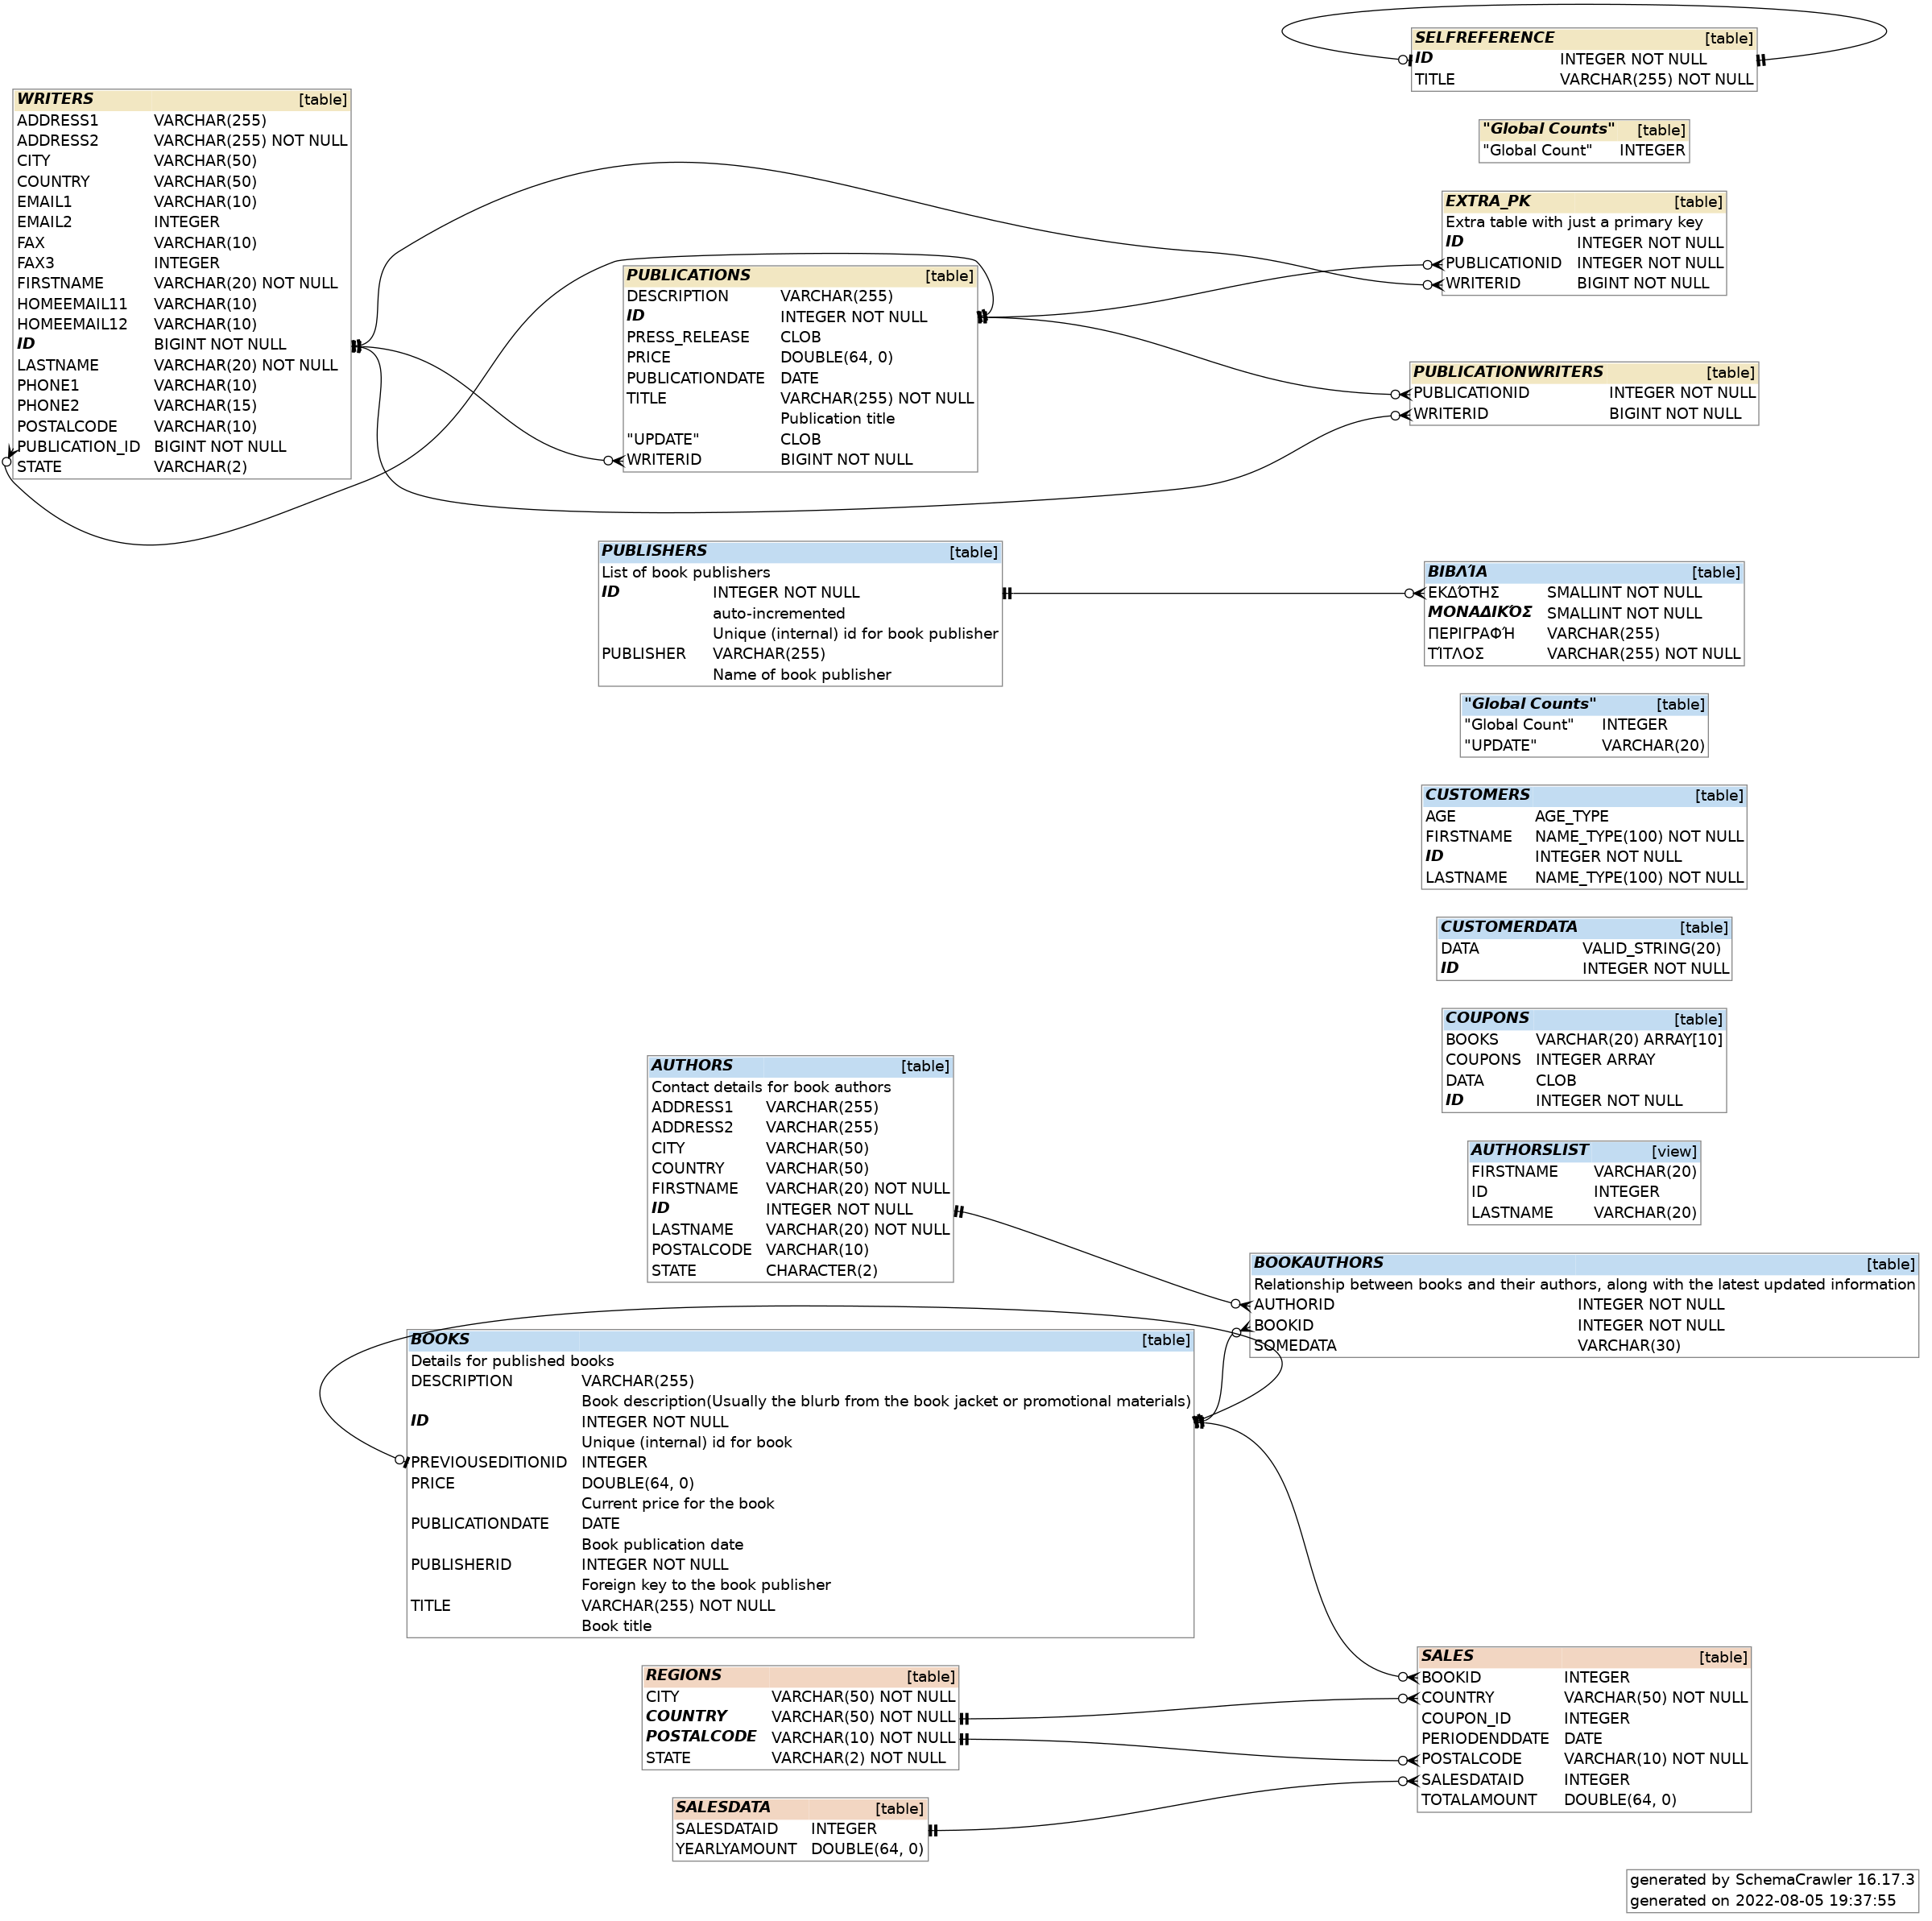 Schemacrawler free database schema discovery and comprehension tool grep ccuart Image collections